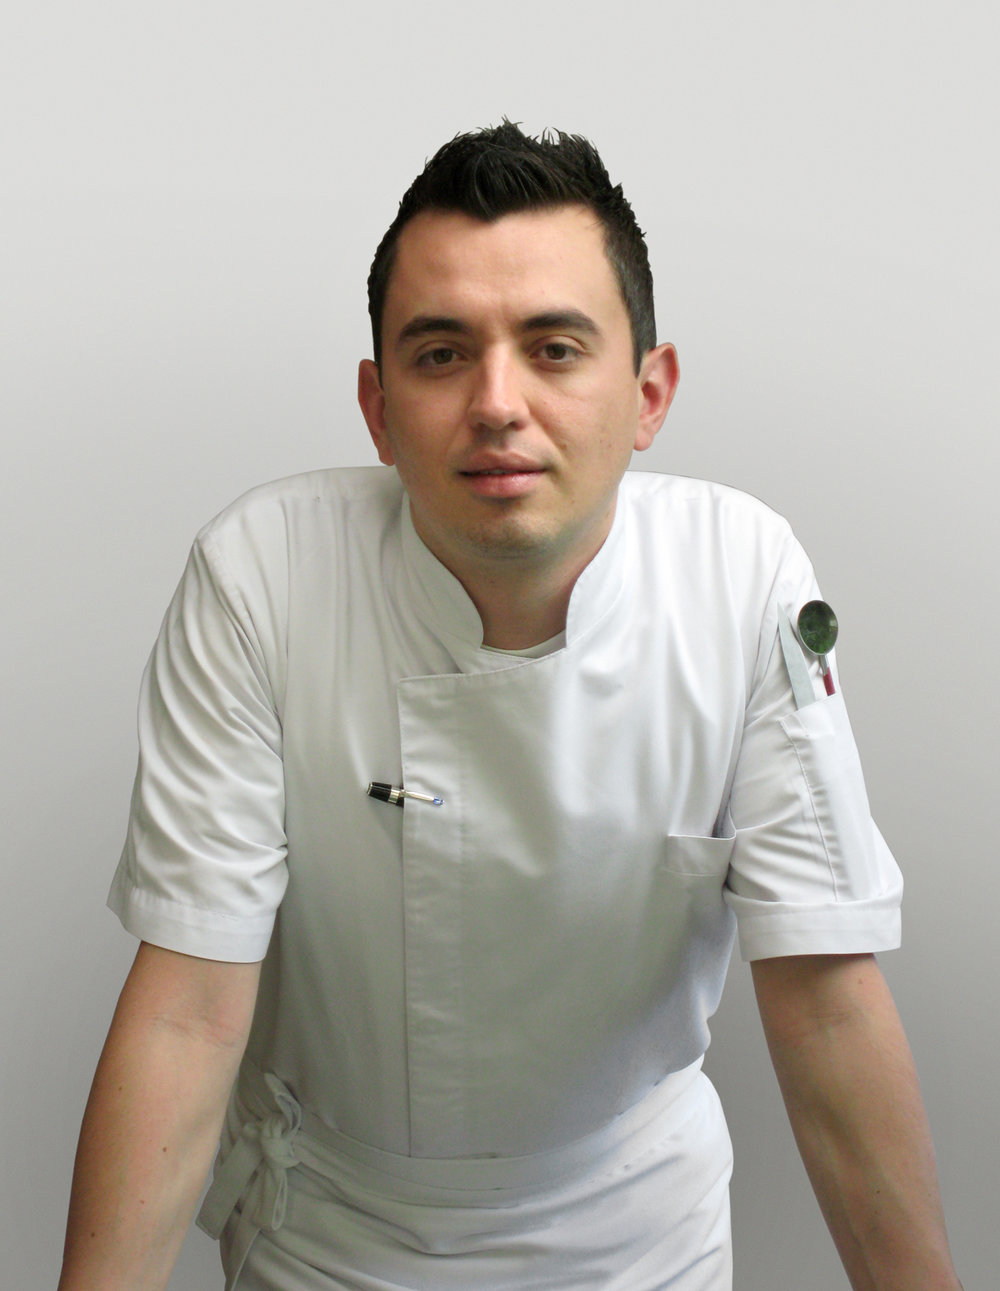 Chef Edgar Nuñez